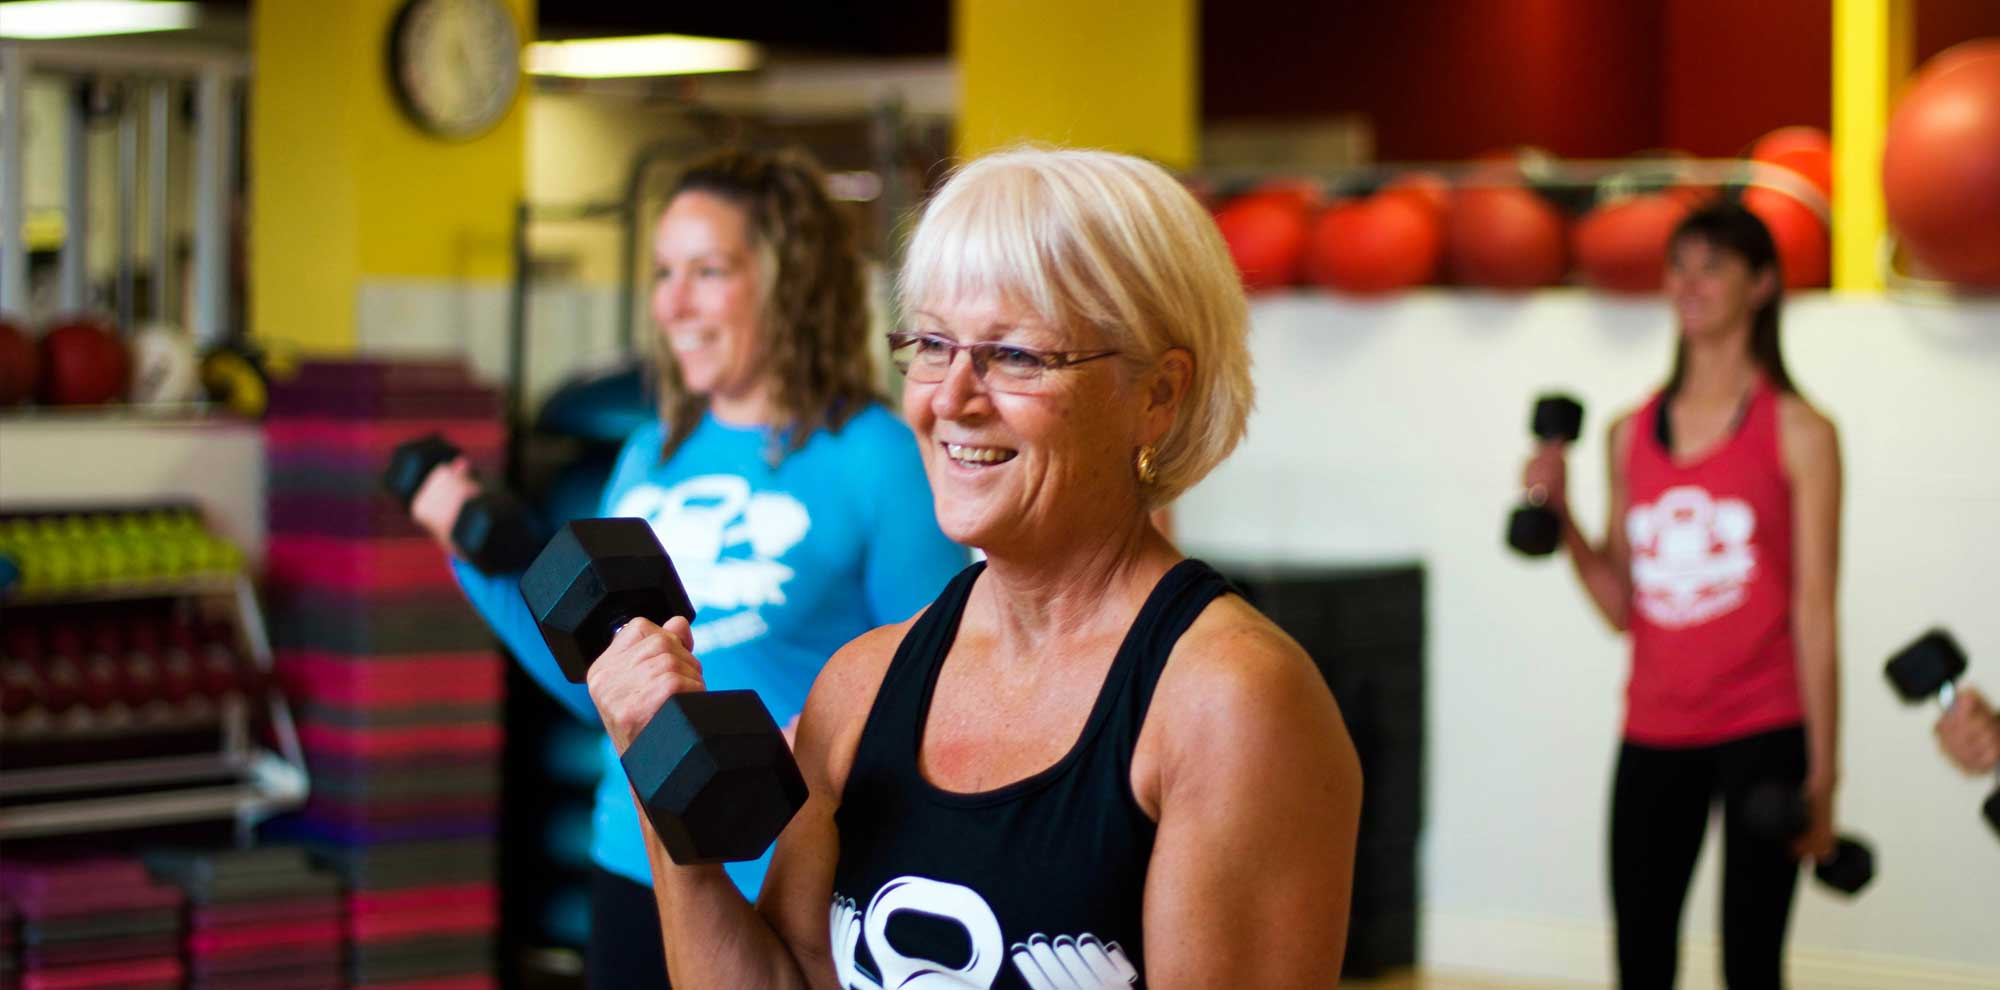 Boot Camp for 55+